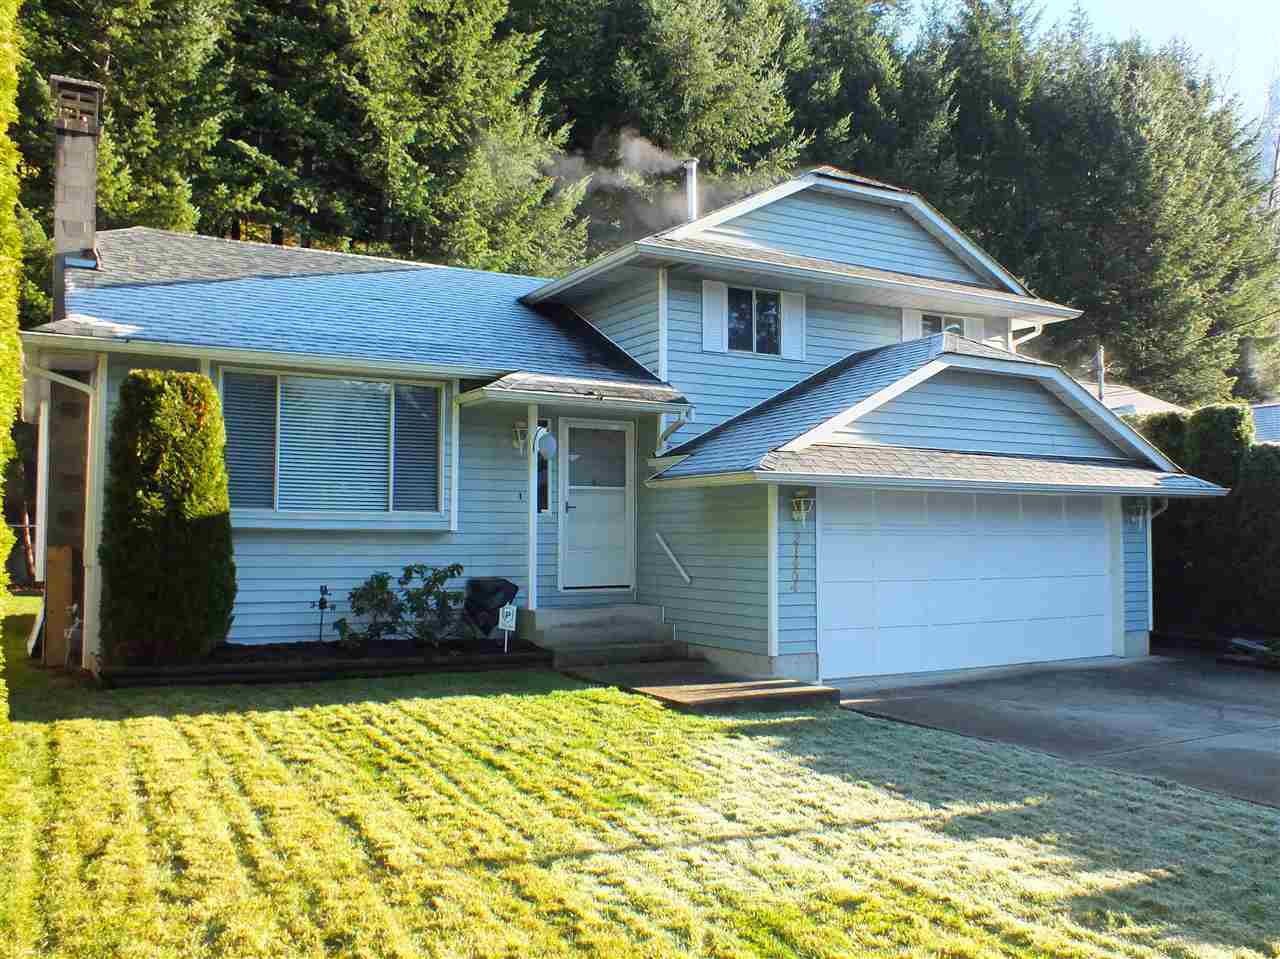 Main Photo: 21464 RICHMOND Drive in Hope: Hope Kawkawa Lake House for sale : MLS®# R2225565